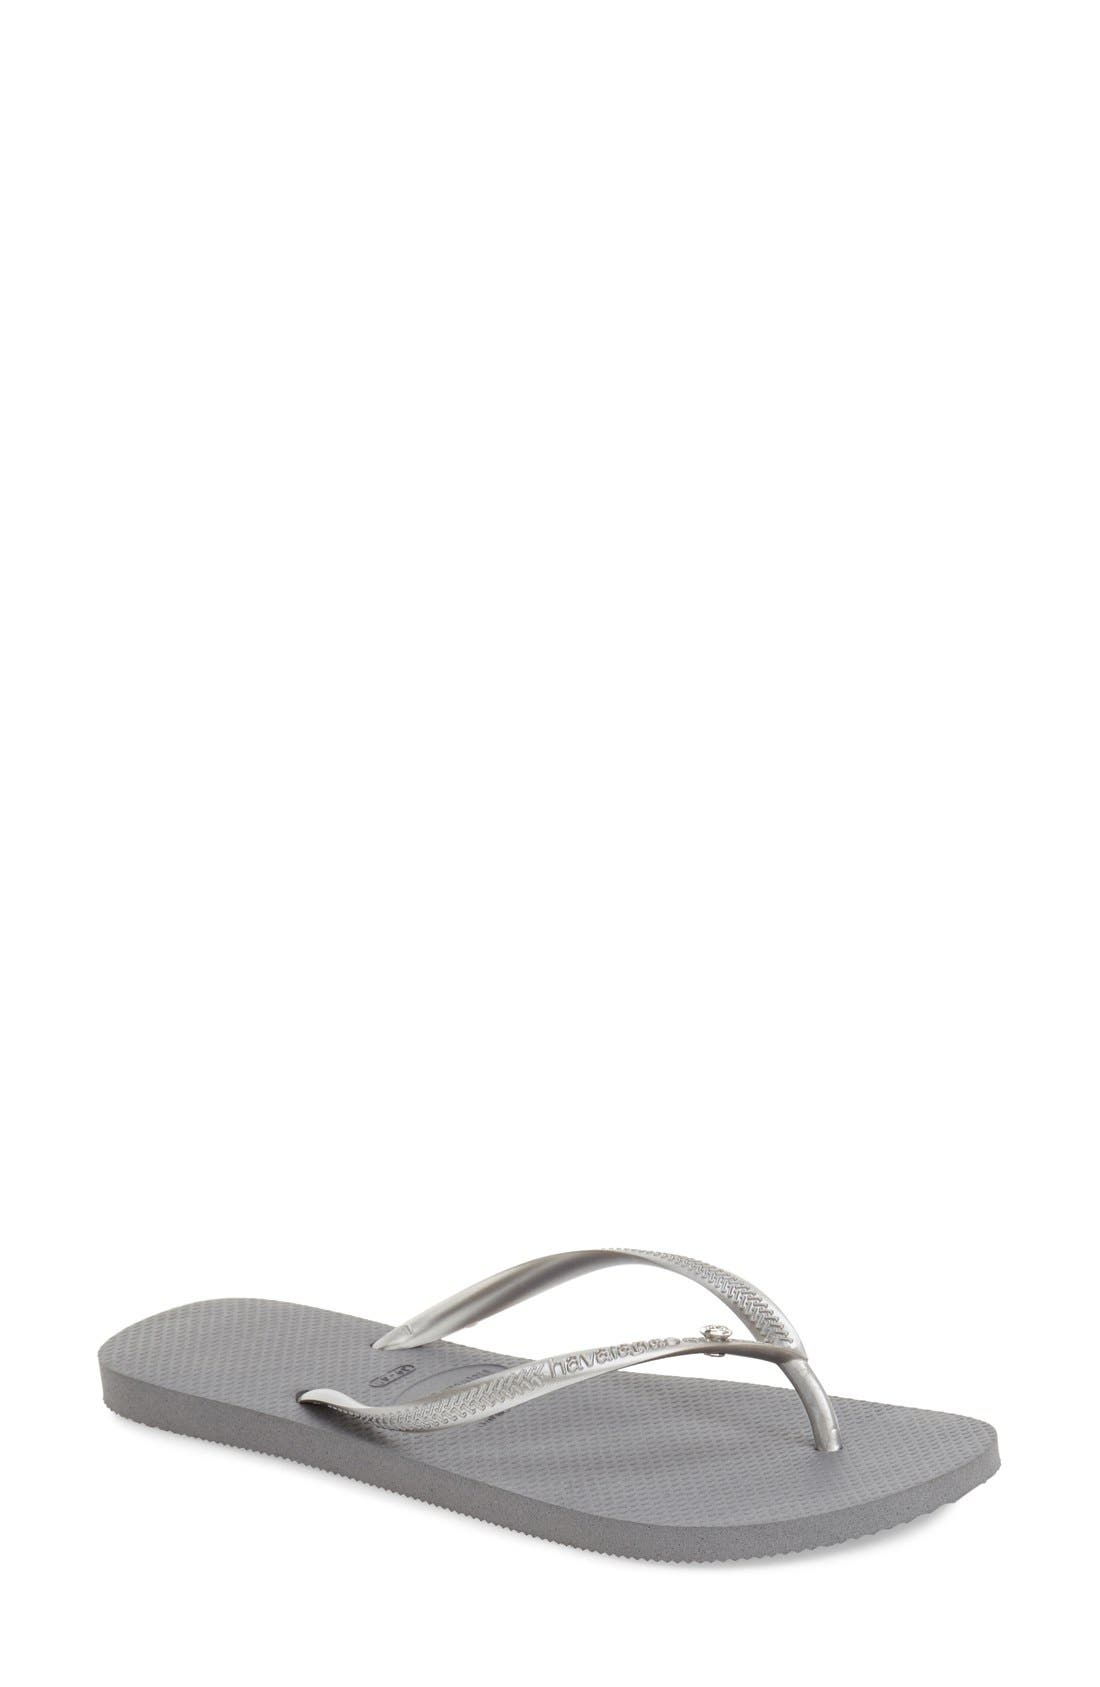 Main Image - Havaianas 'Slim Crystal Glamour' Flip Flop (Women)